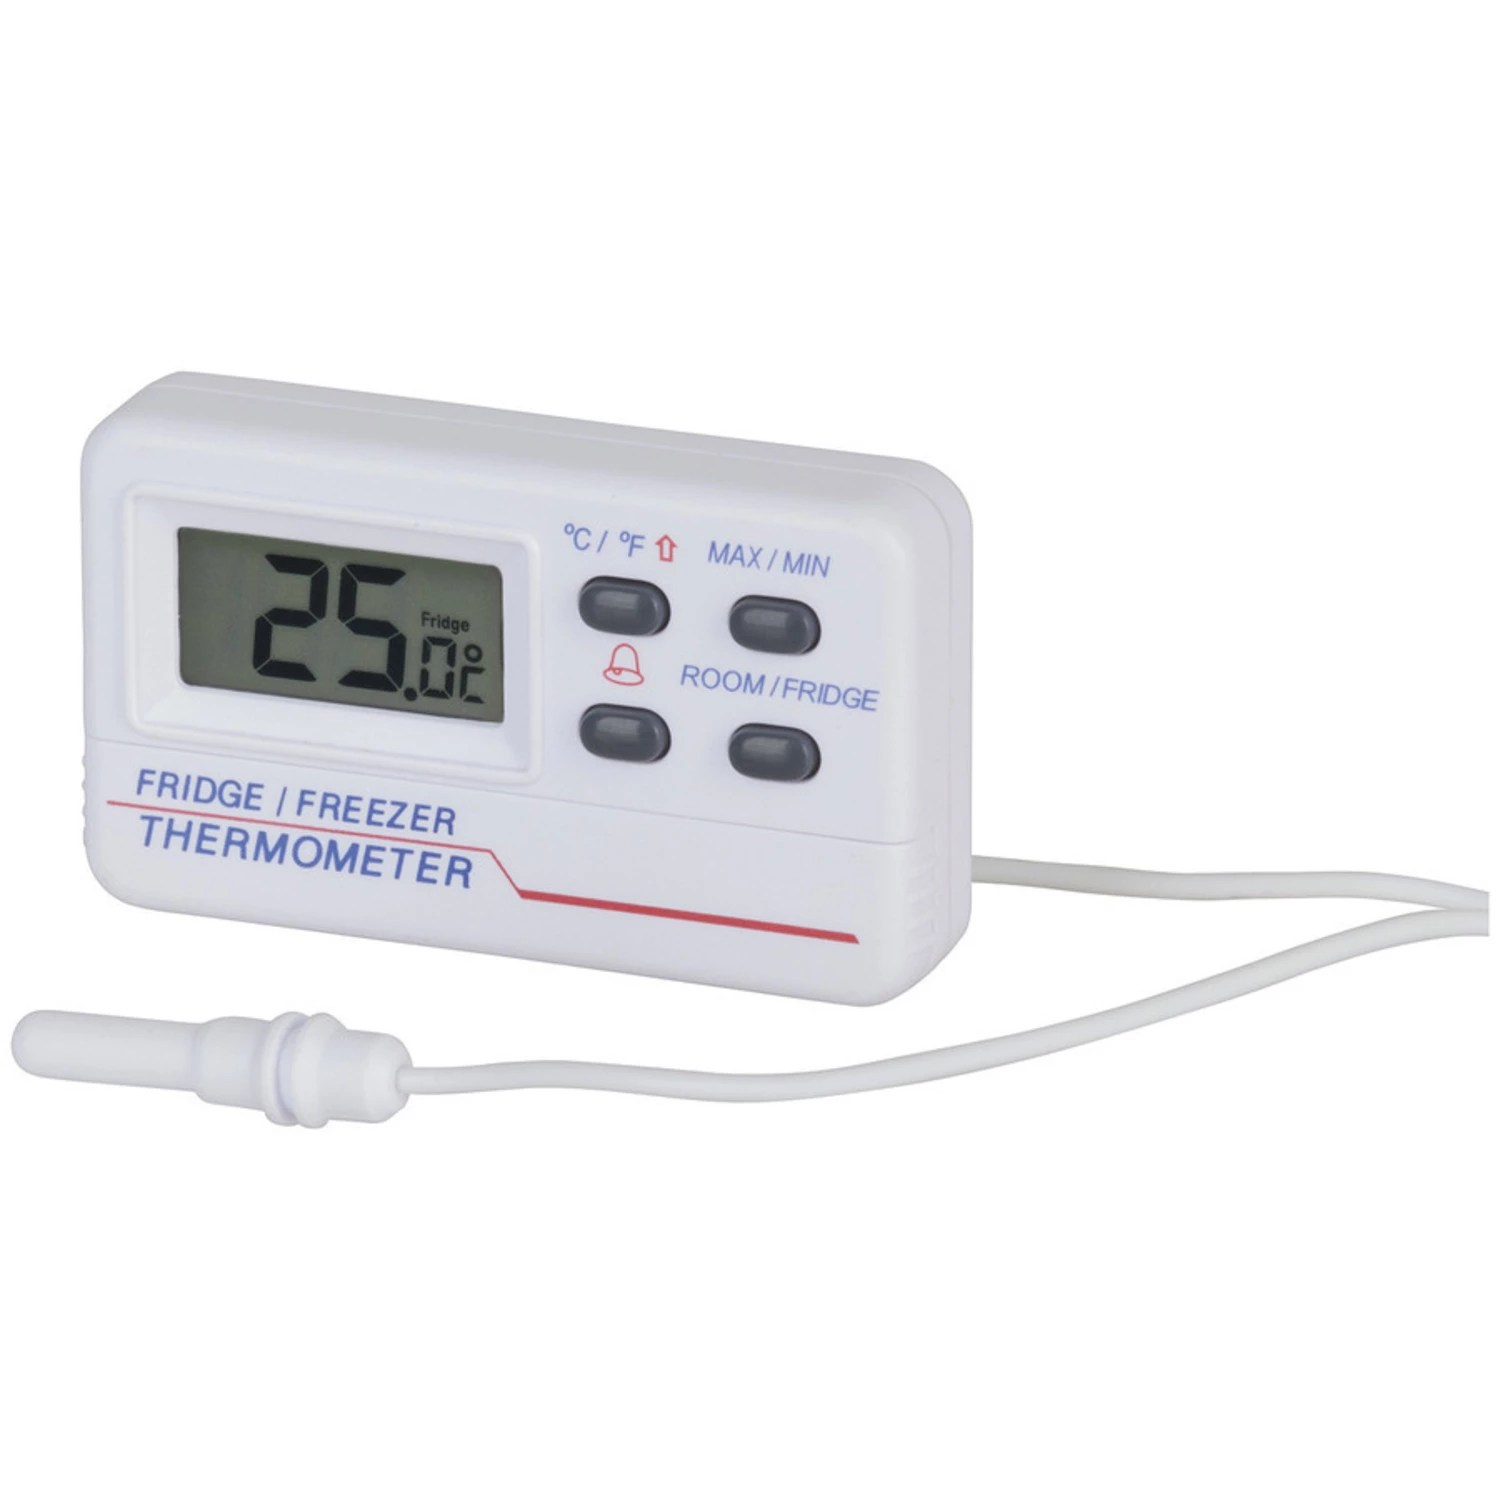 Thermometer Australia Digital Thermometer For Fridge Or Freezer Australia Little Bird